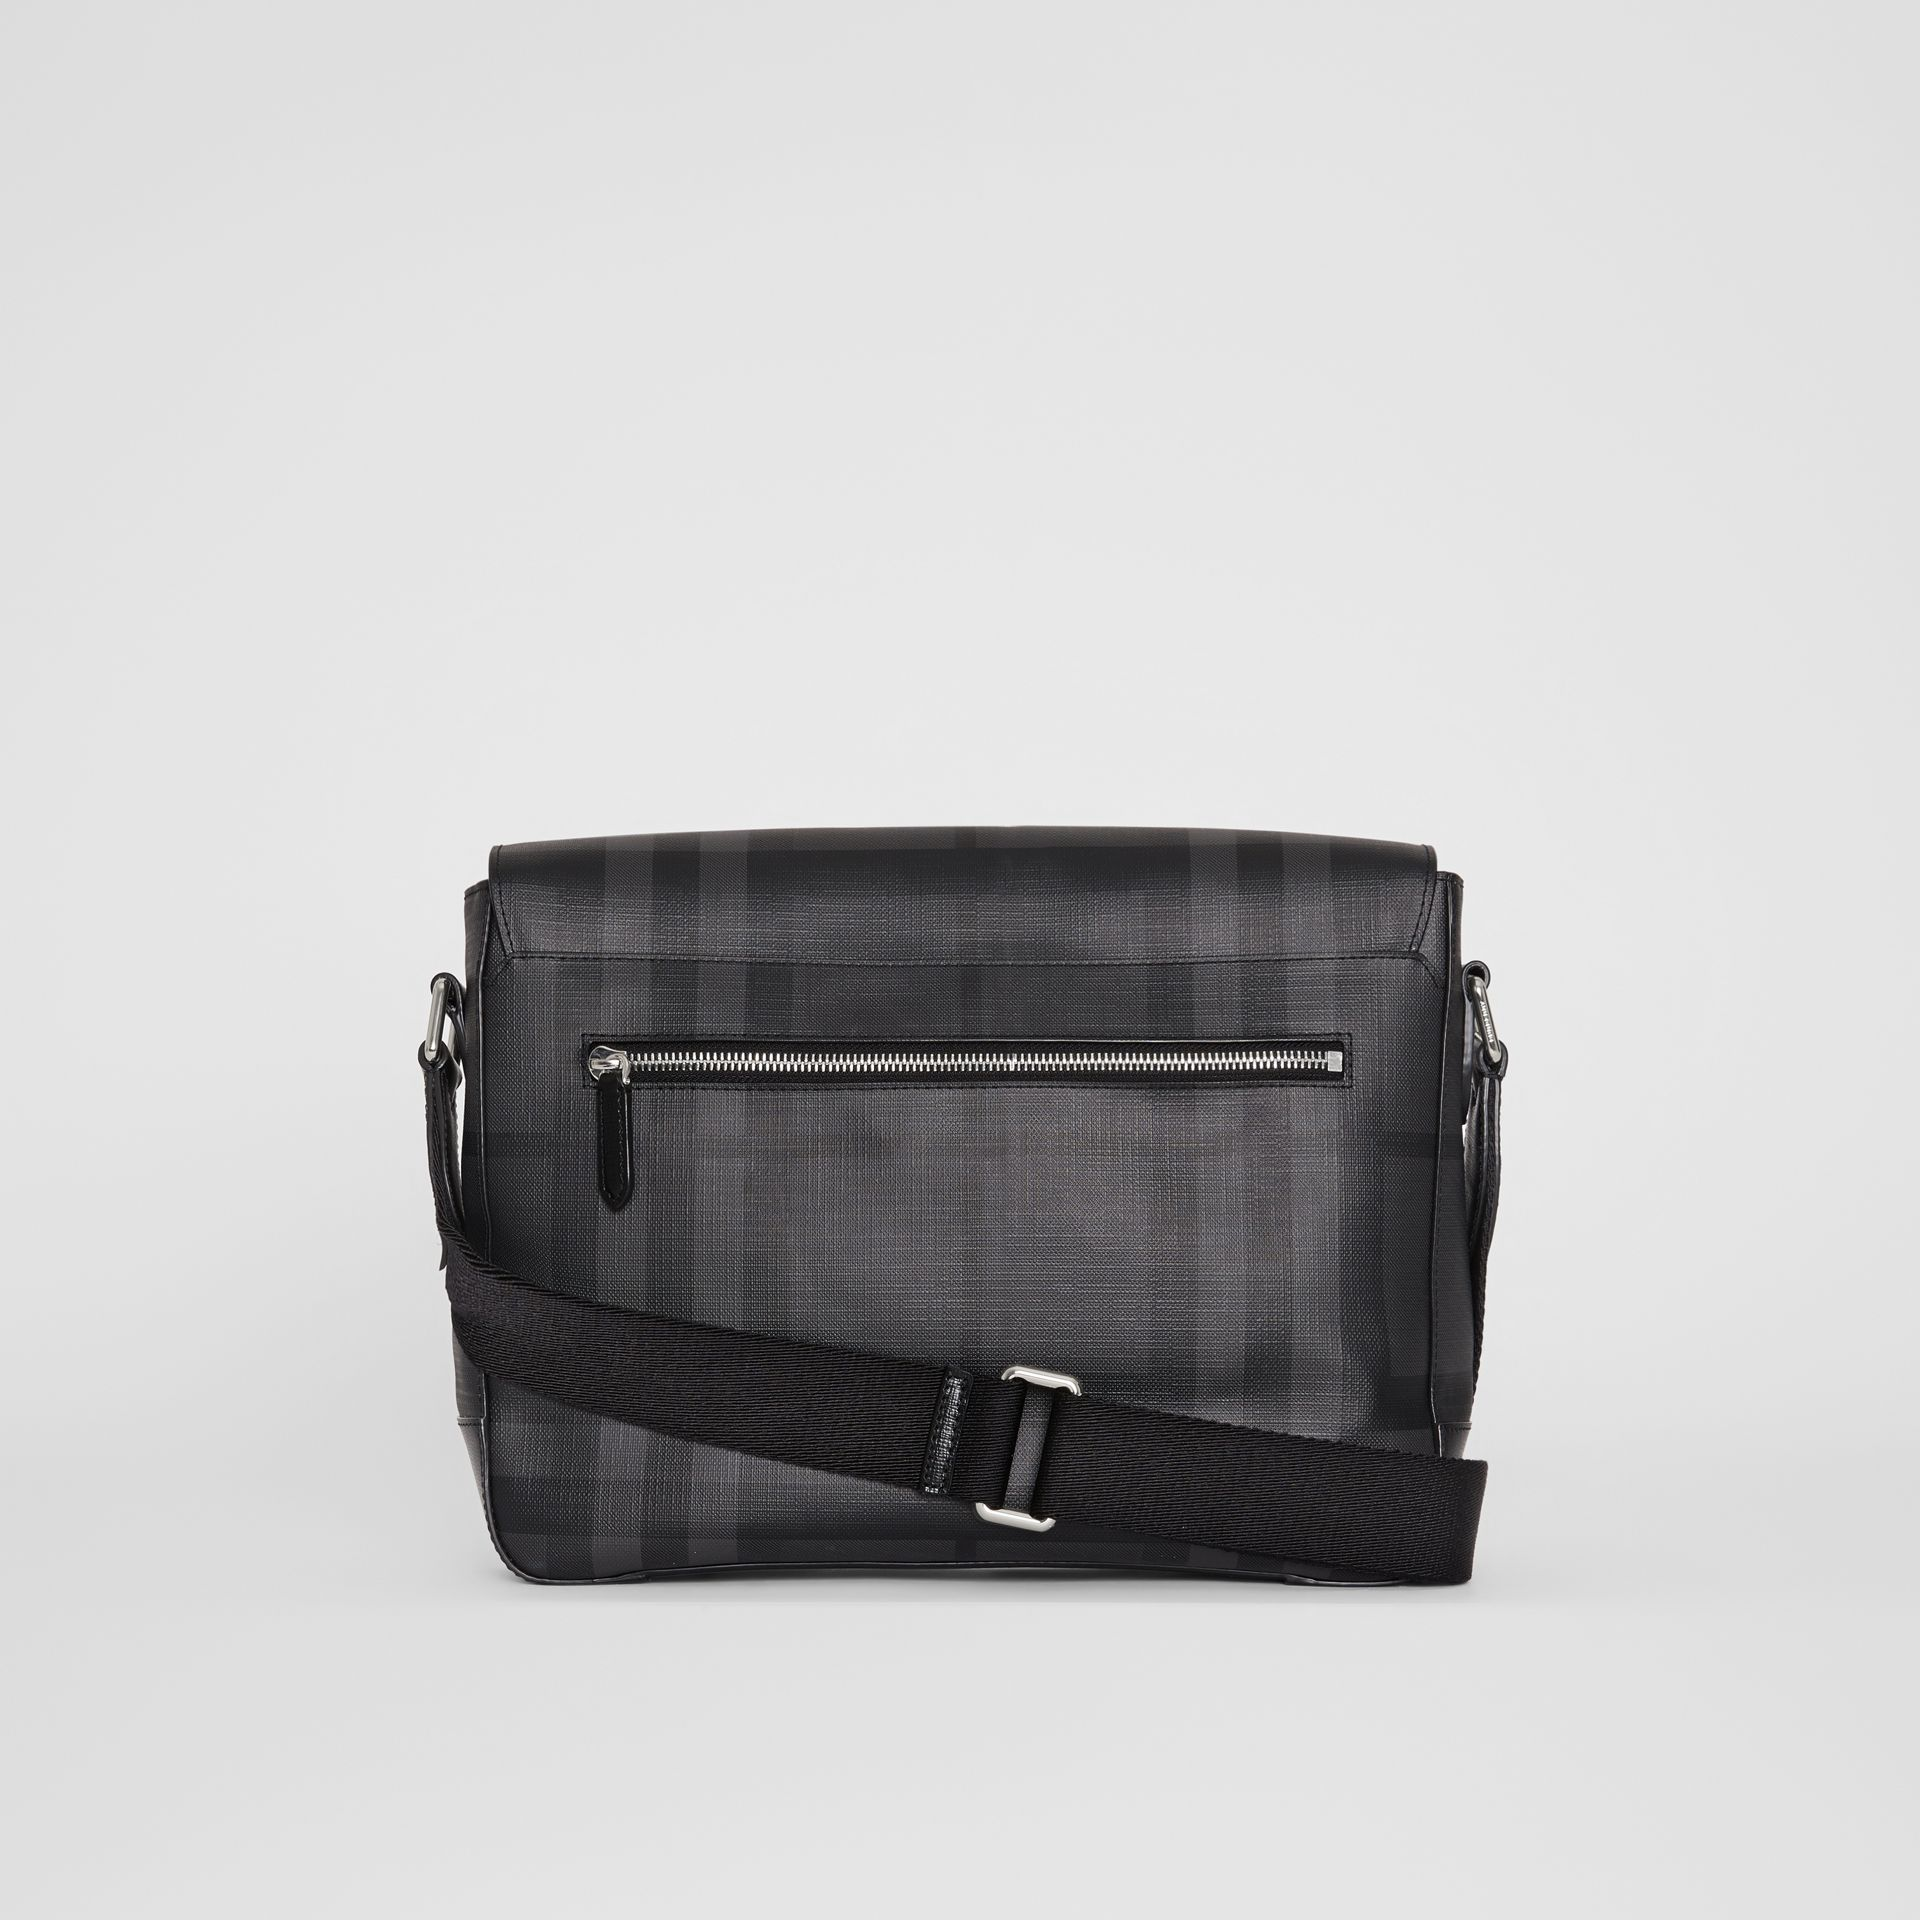 Medium Leather Trim London Check Messenger Bag in Charcoal/black - Men | Burberry Singapore - gallery image 7